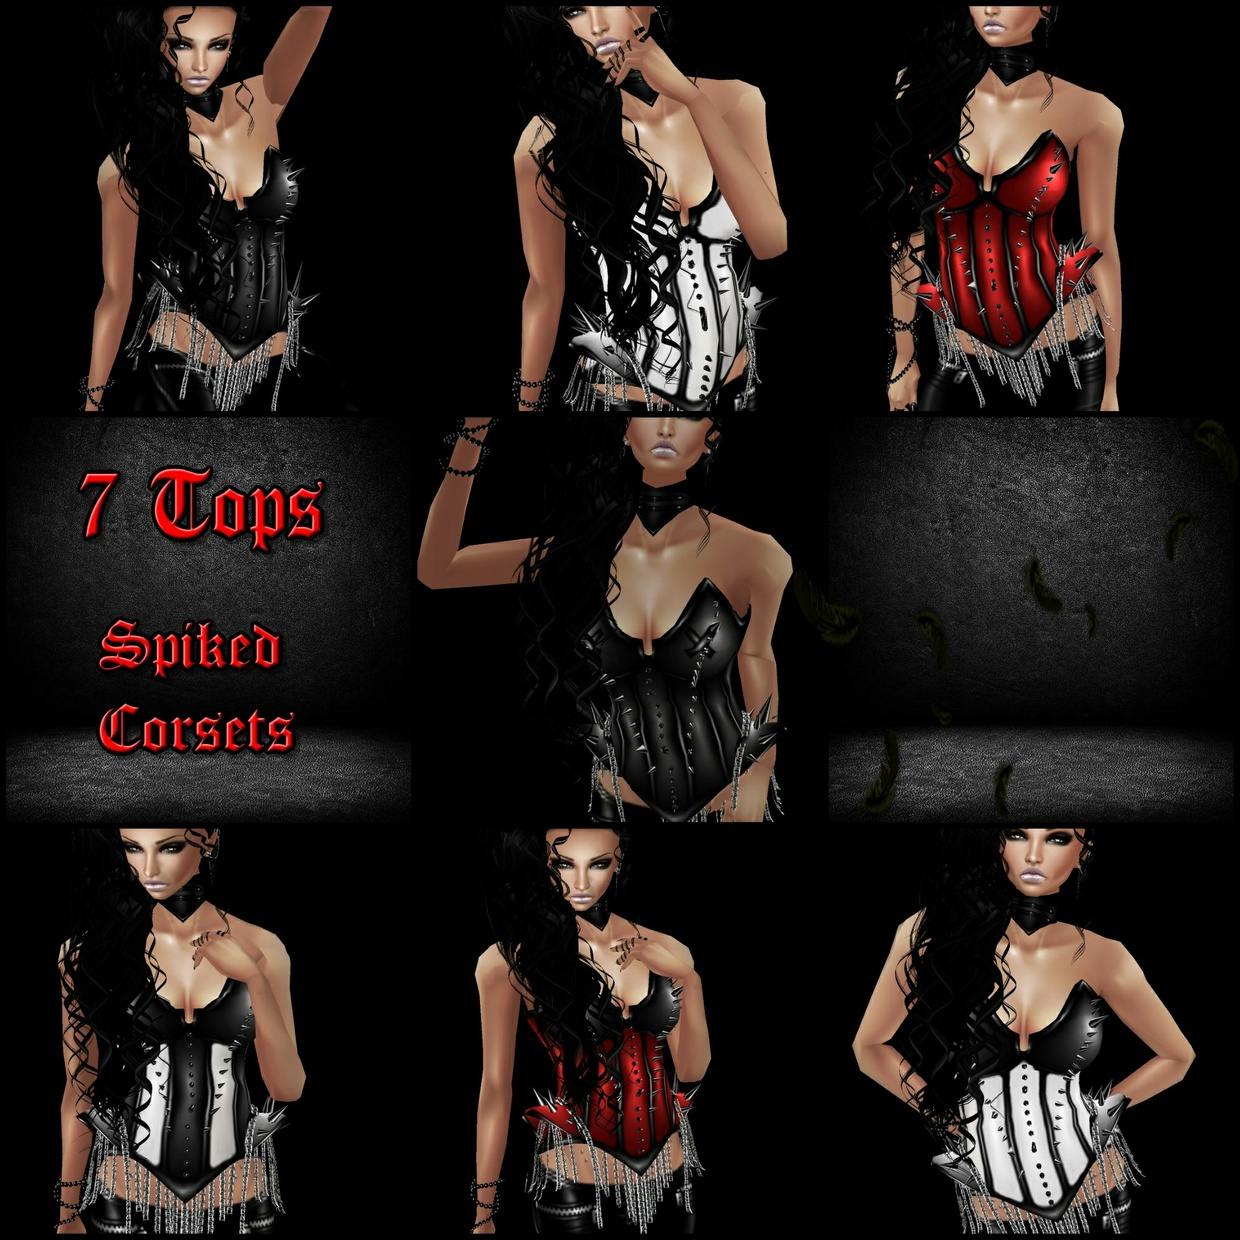 Spikes Corsets